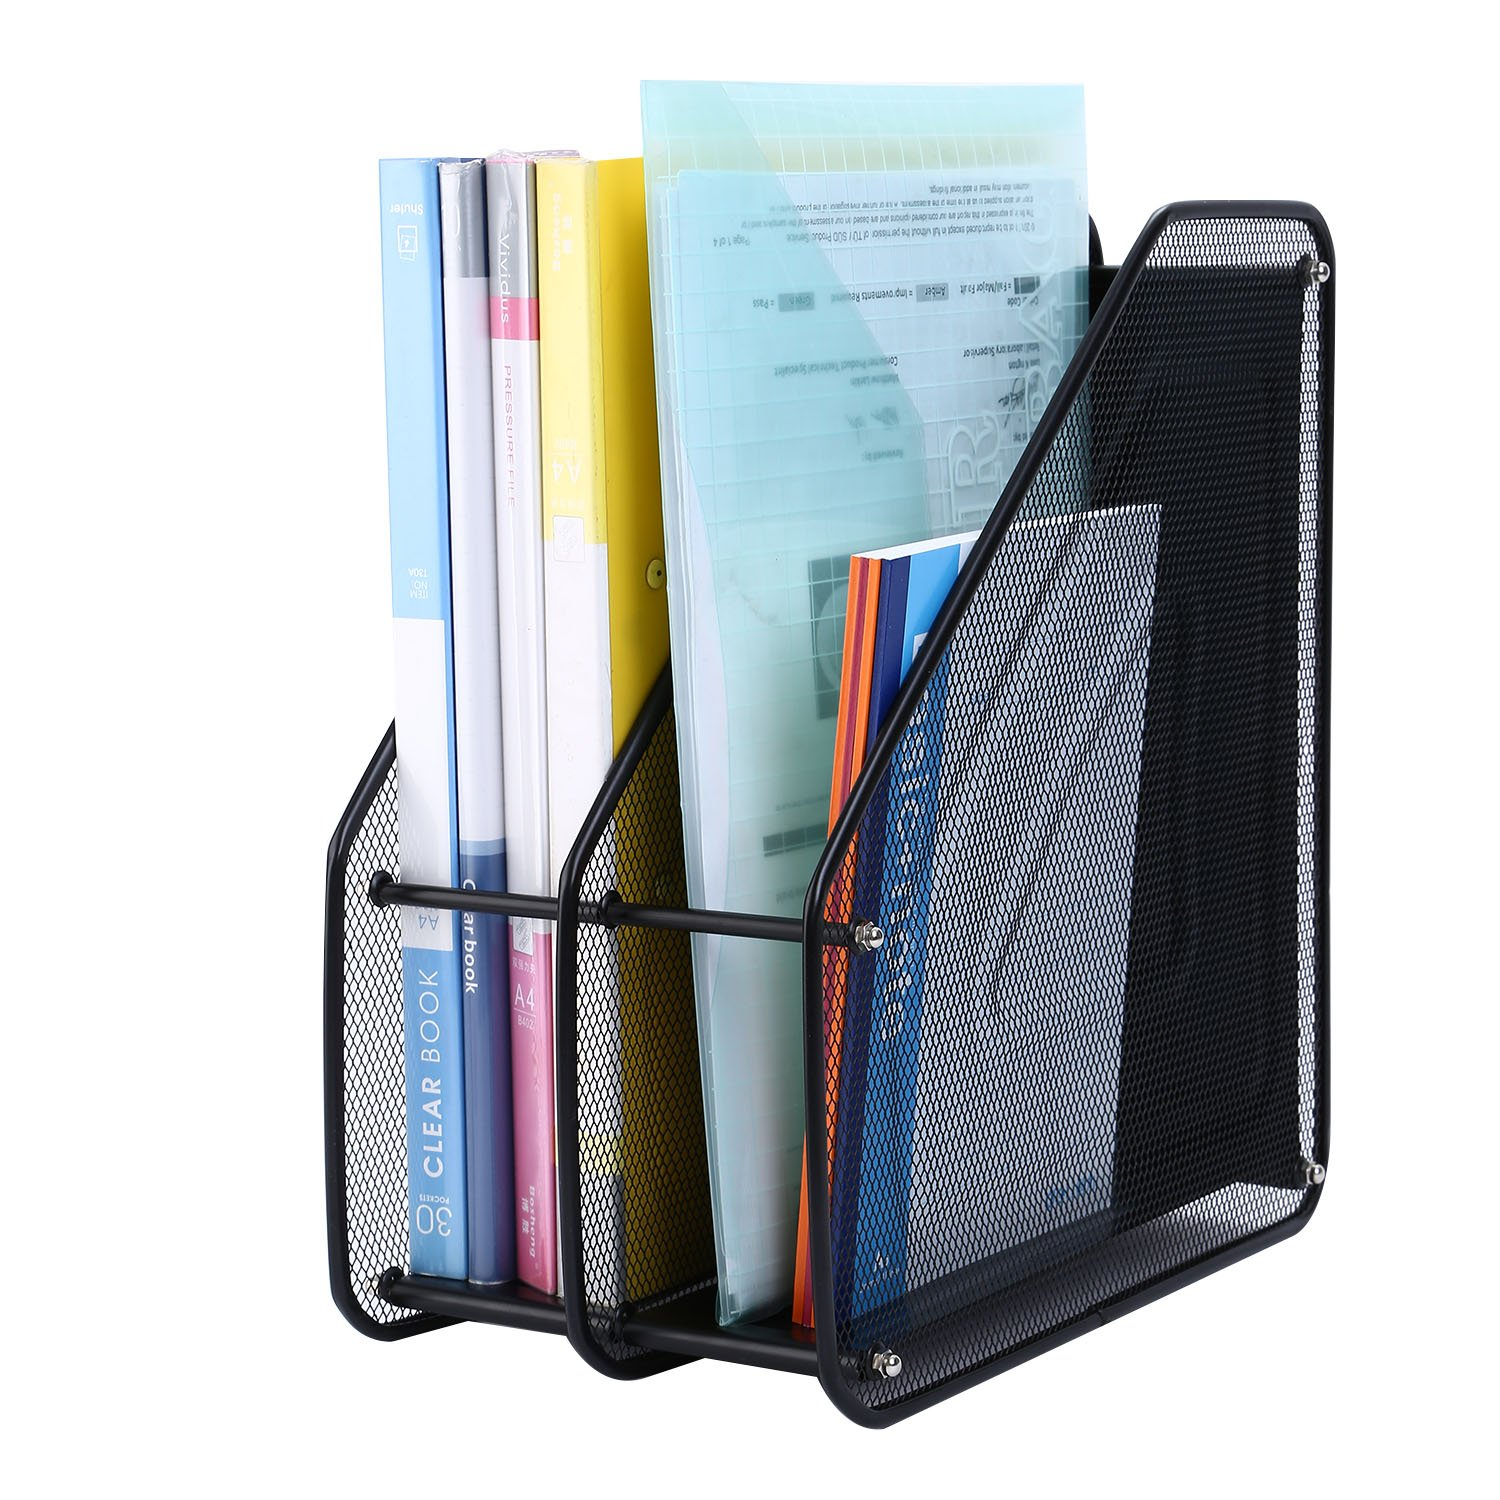 CRUODA Desktop Documents Organizer, 2 Compartment File Rack - Black Mesh Metal Office Desk Shelf, for Documents, Magazines, Notebooks